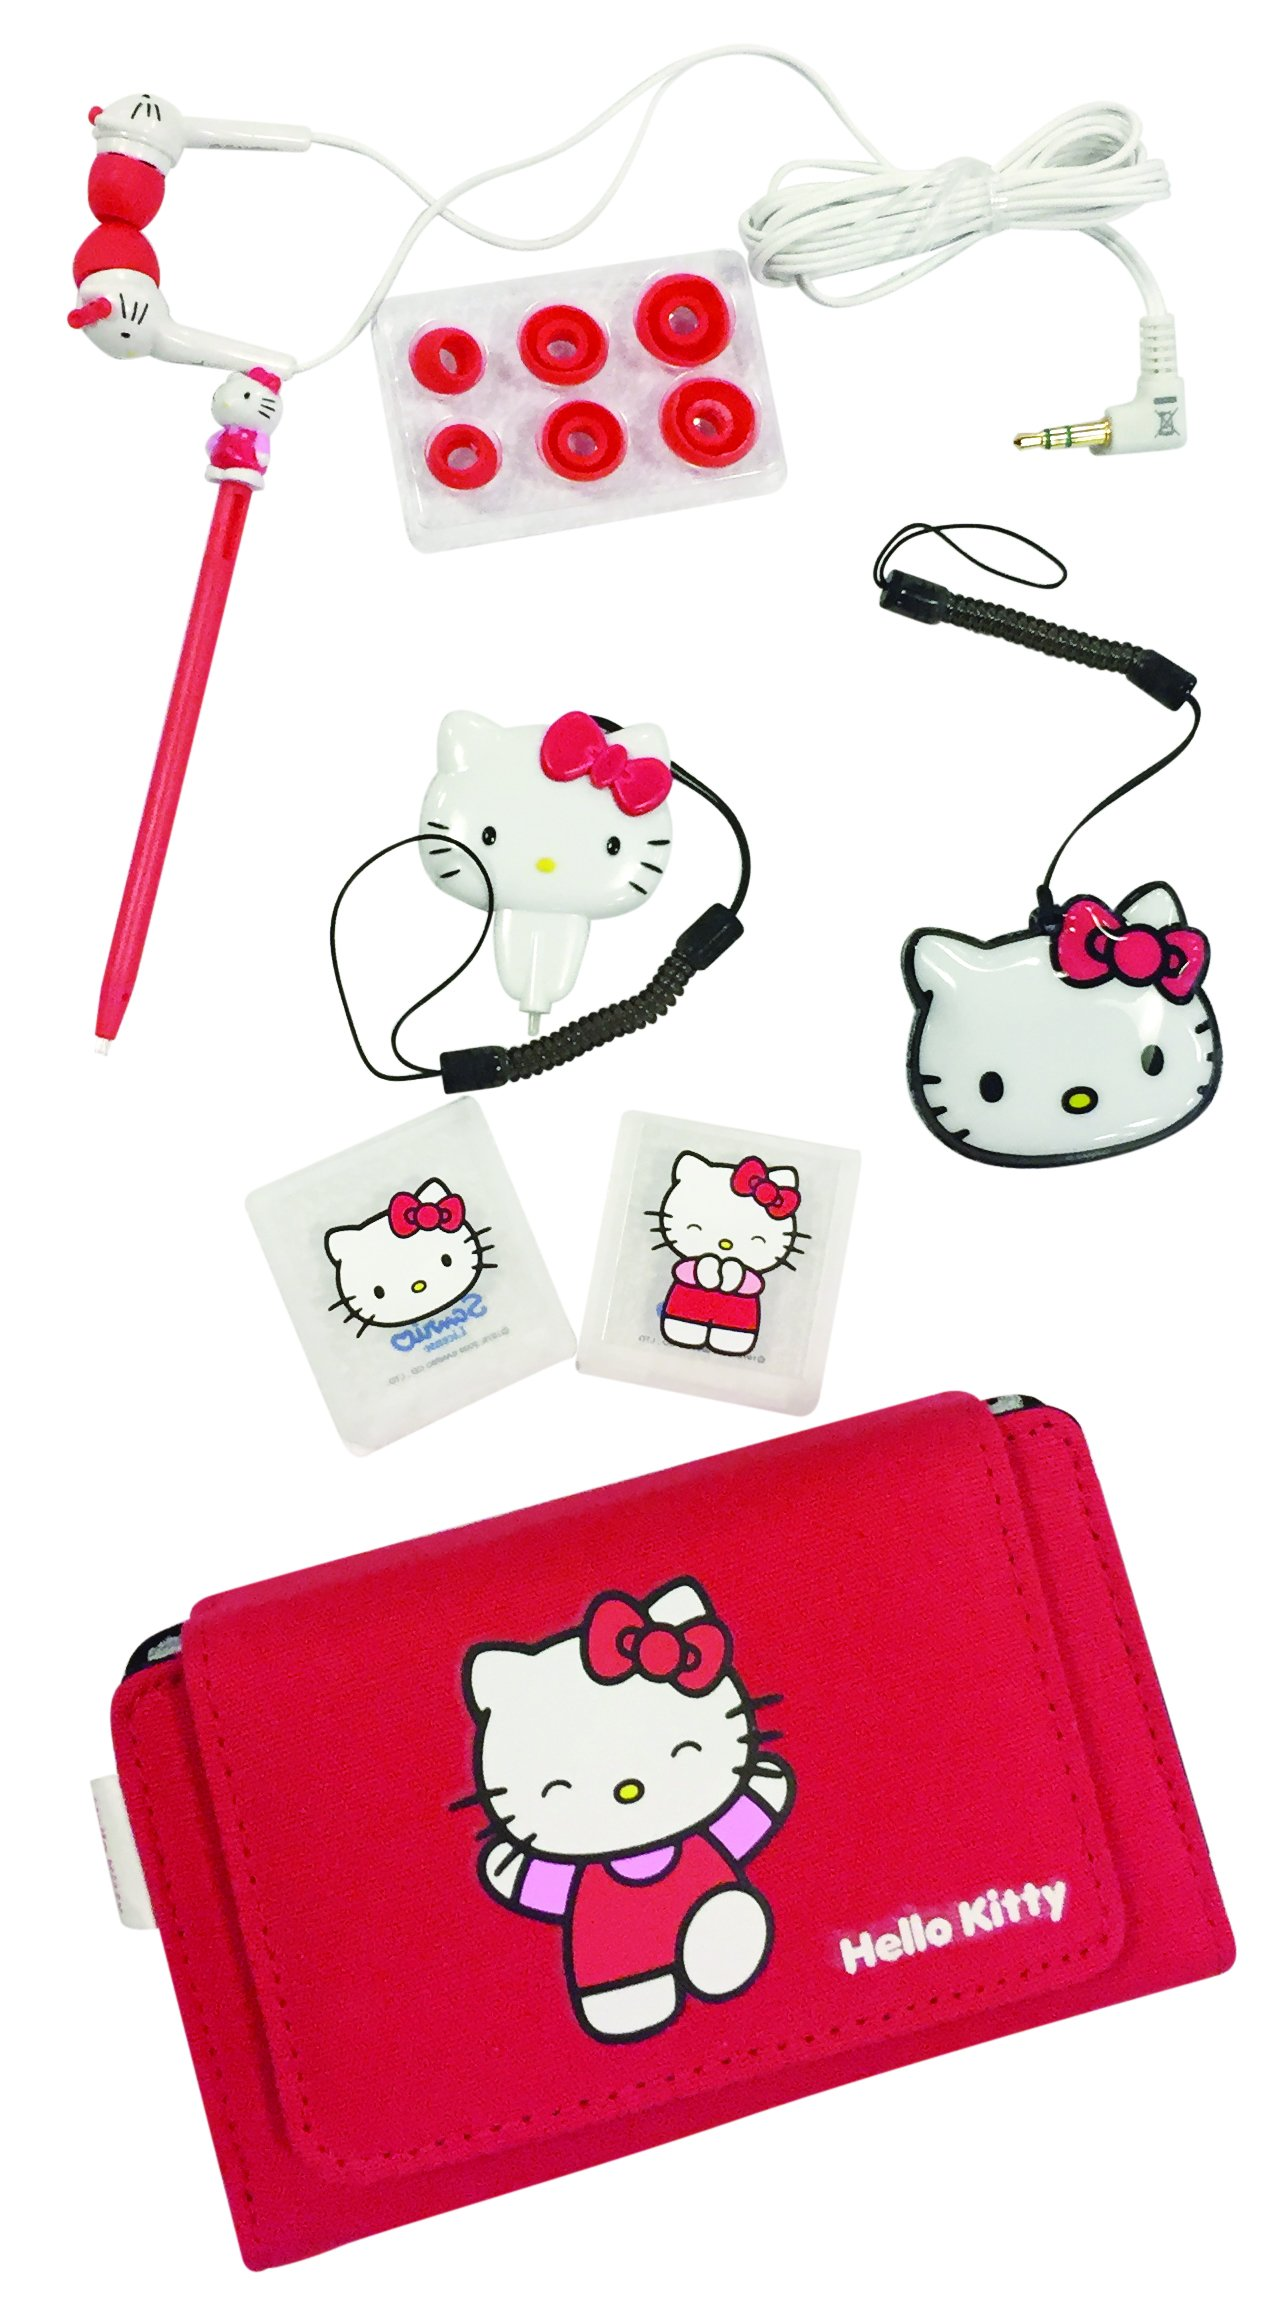 Hello Kitty VD-HK001 - Set Accessori per Nintendo DS/Dsi